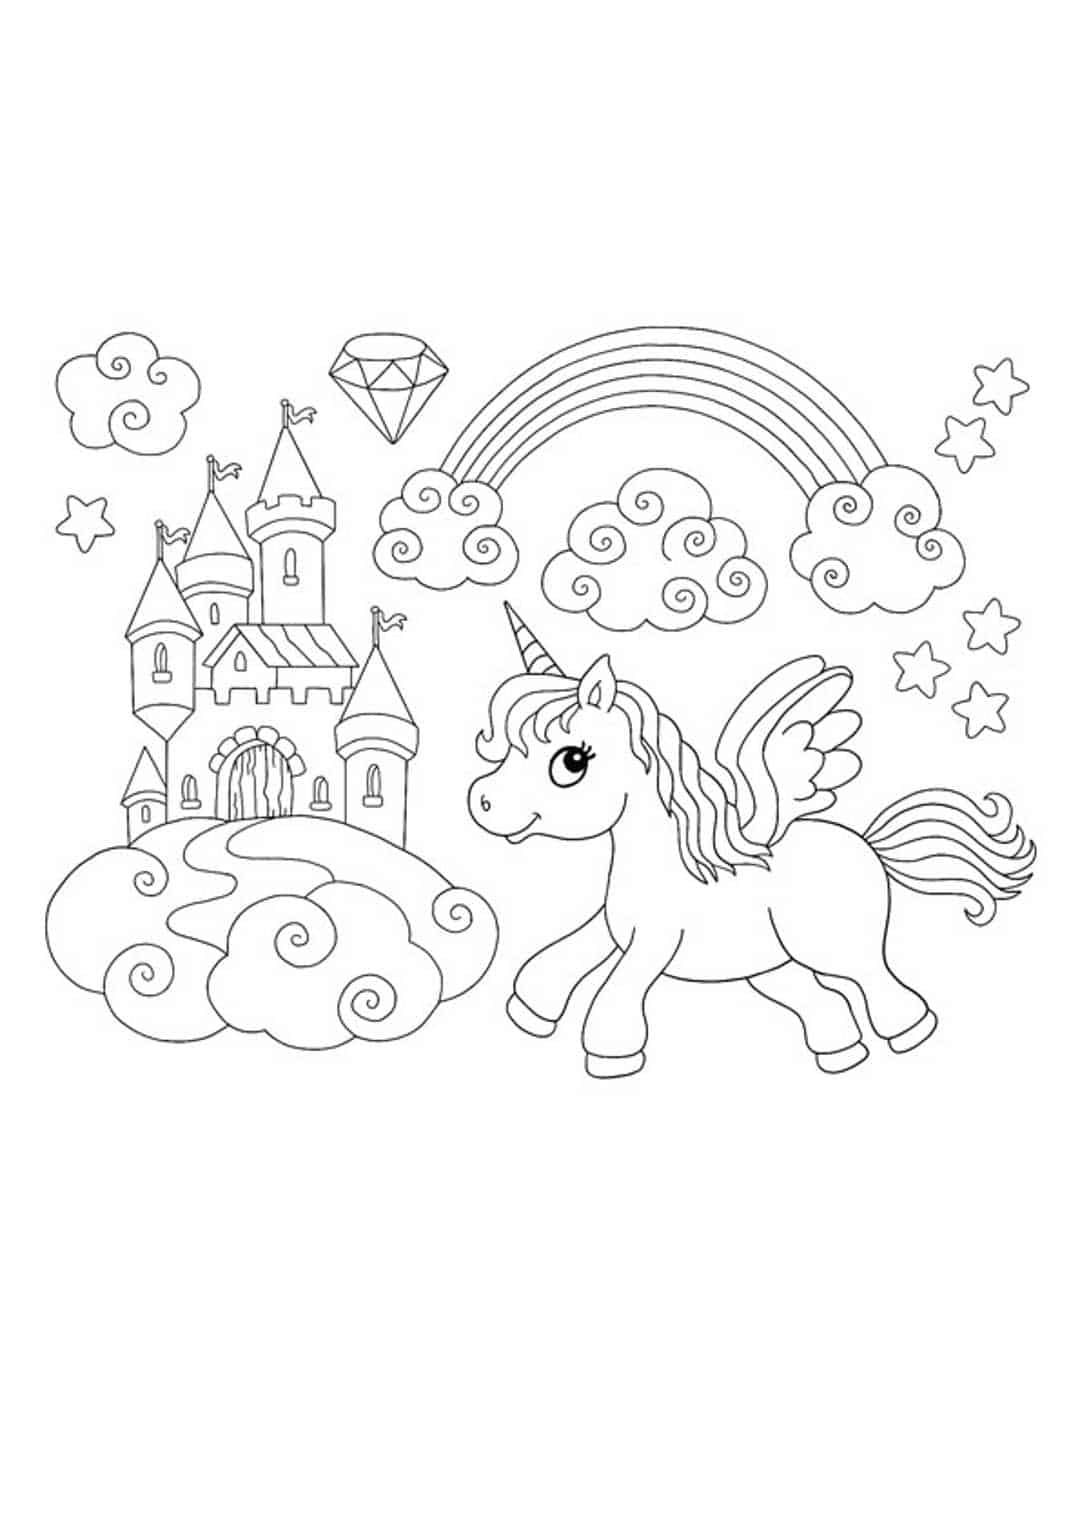 Flying Unicorn Coloring Pages 4 Free Printable Coloring Sheets 2020 Unicorn Coloring Pages Mermaid Coloring Pages Free Printable Coloring Sheets